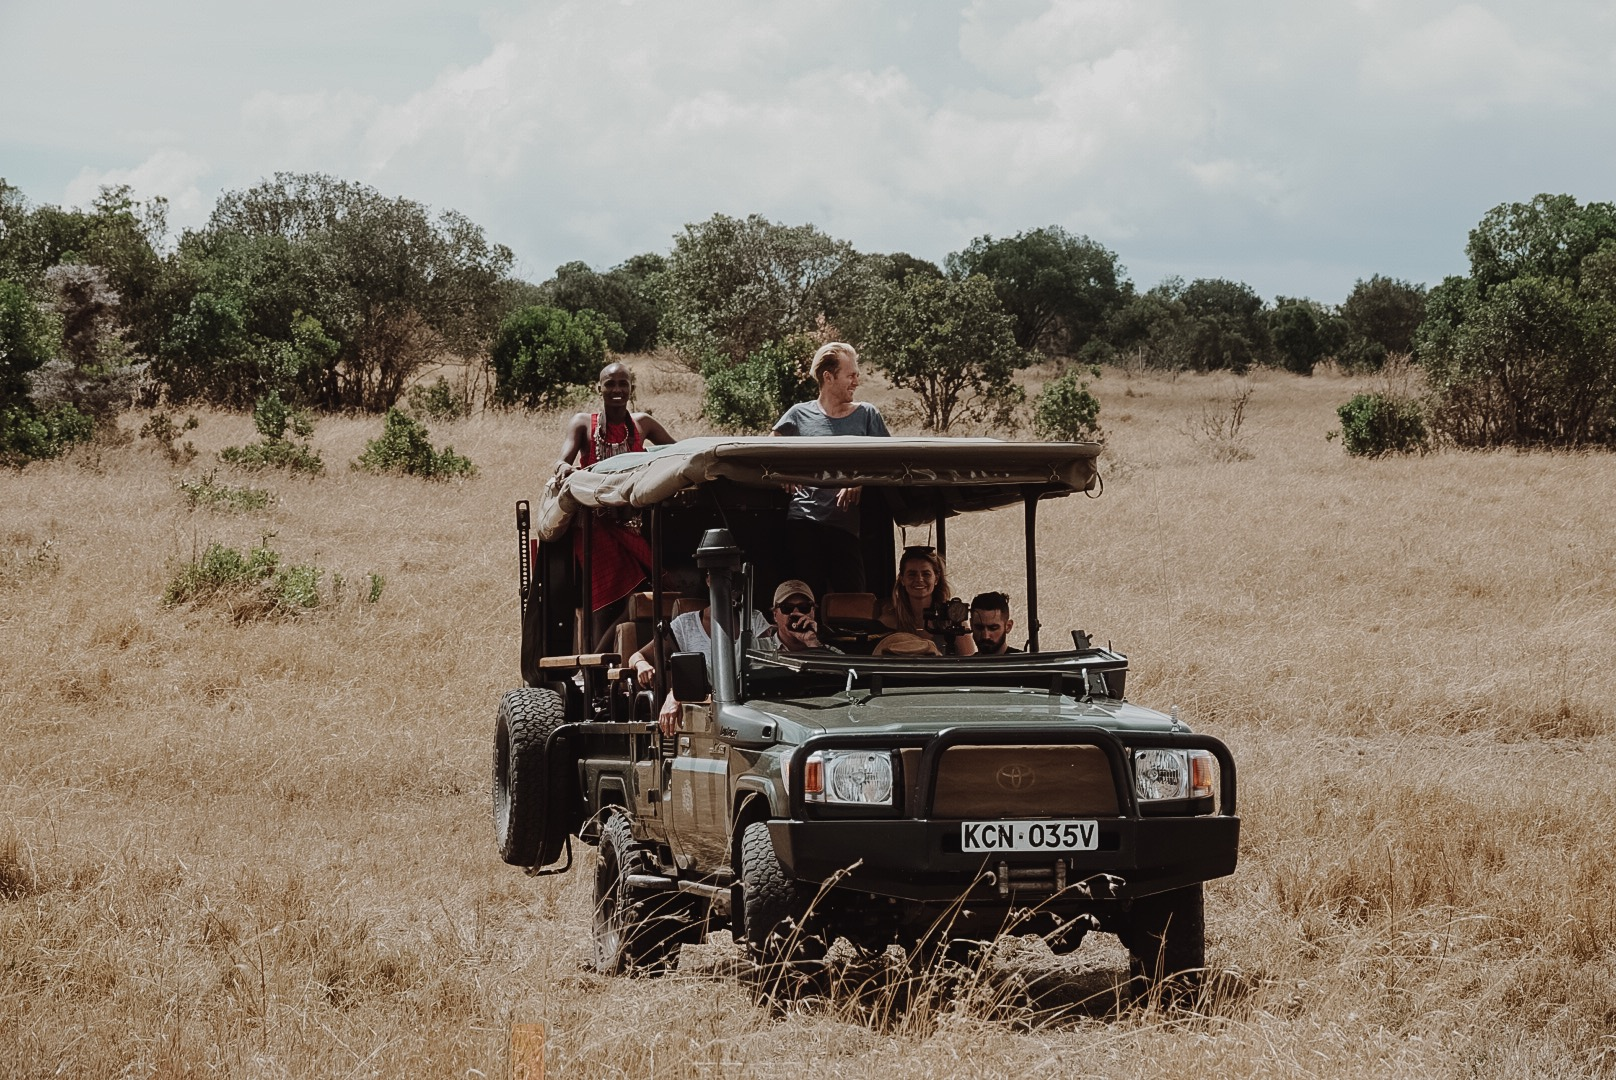 Land Cruiser on Safari in Kenya's Maasari Mara ph. Ashley Torres - Everyday Pursuits